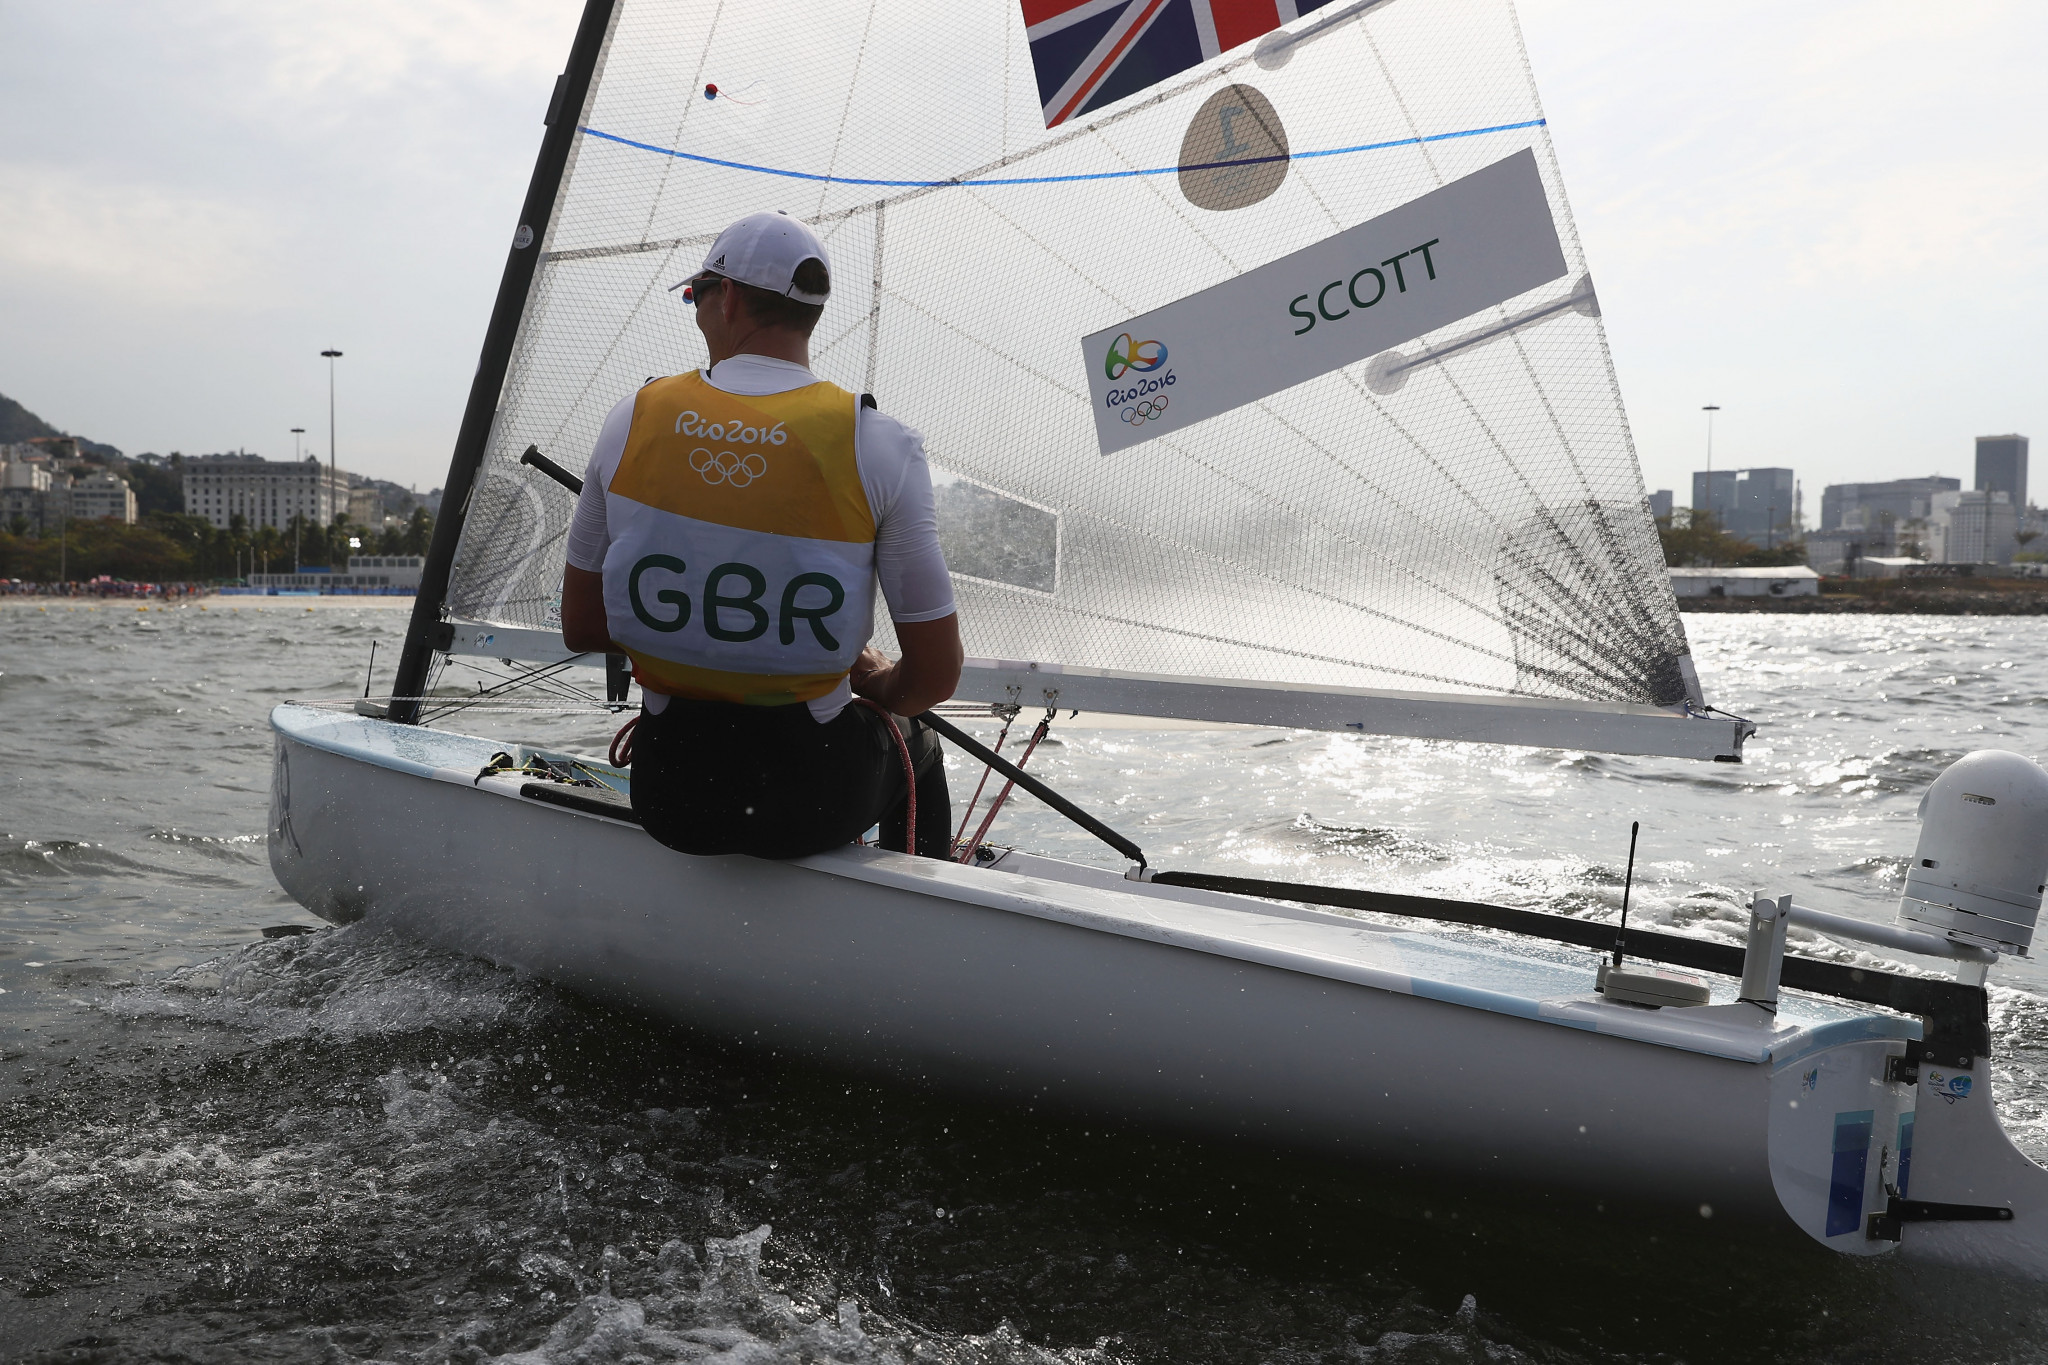 Rio 2016 champion Giles Scott of Britain currently sits in second place in the standings at the Finn European Open in Vilamoura  ©Getty Images